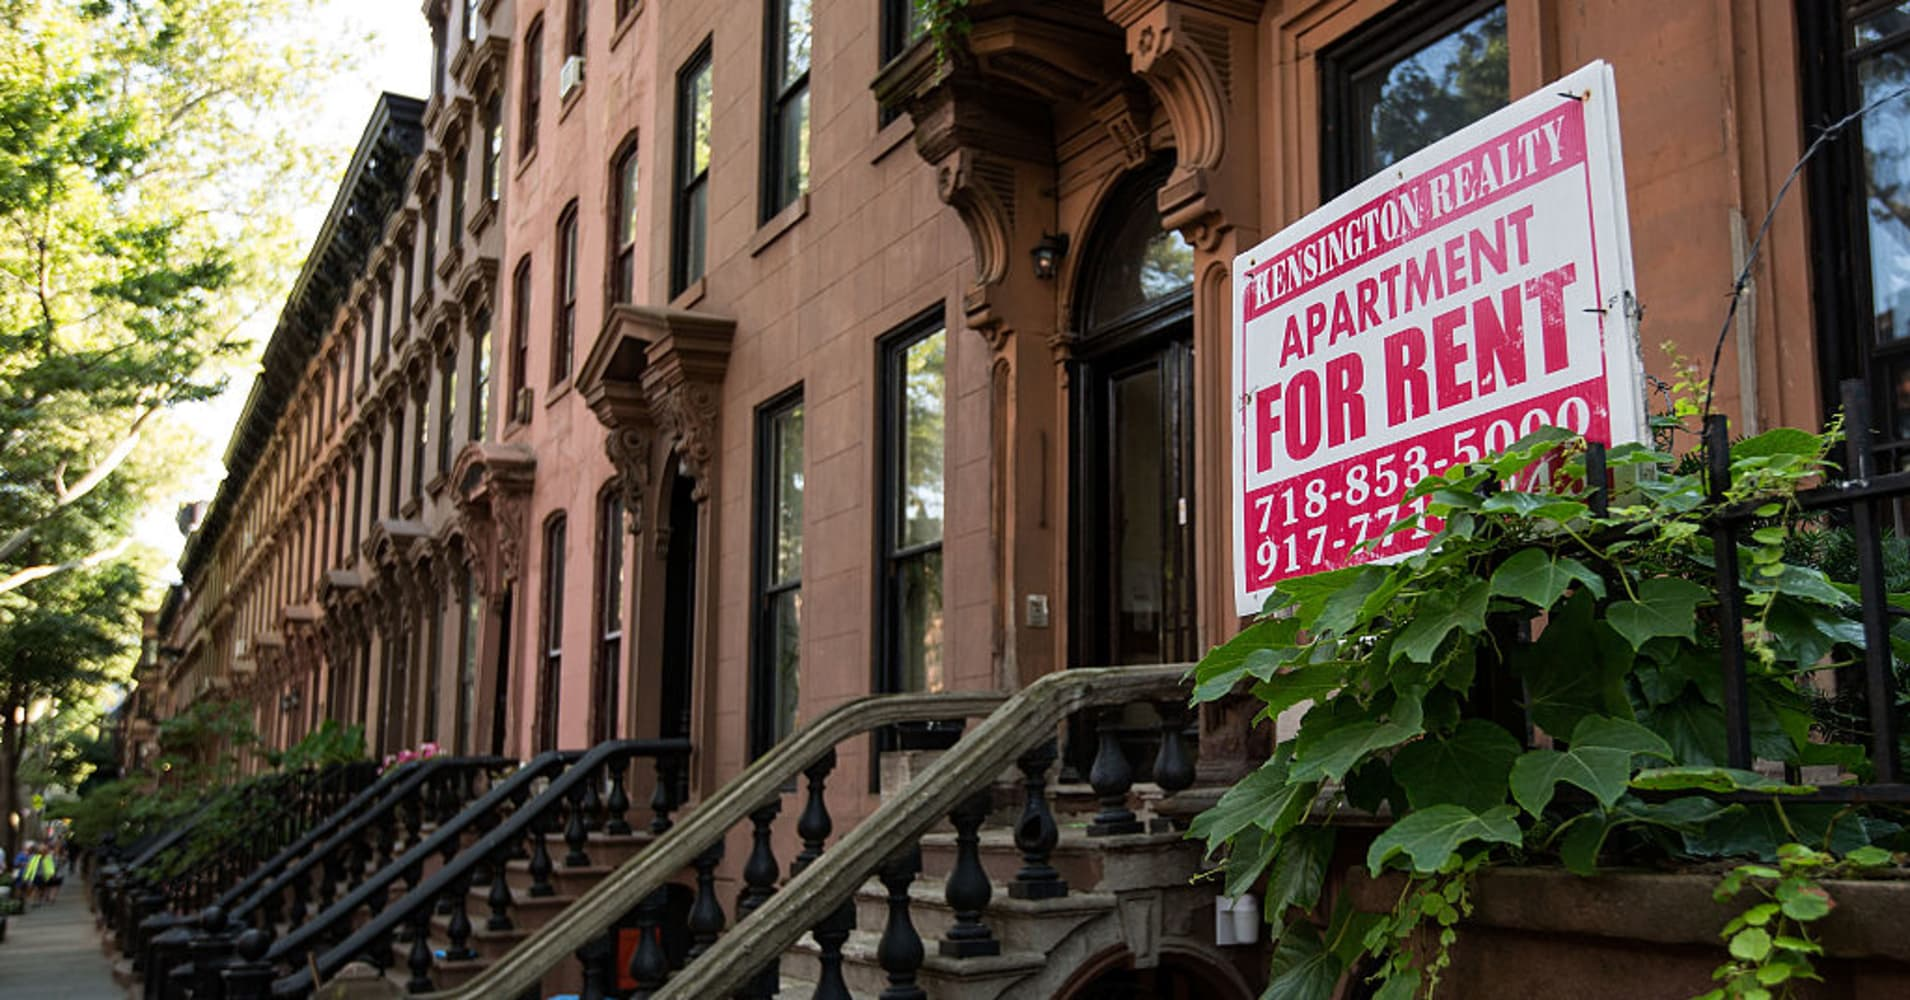 Republican tax plan poised to benefit landlords